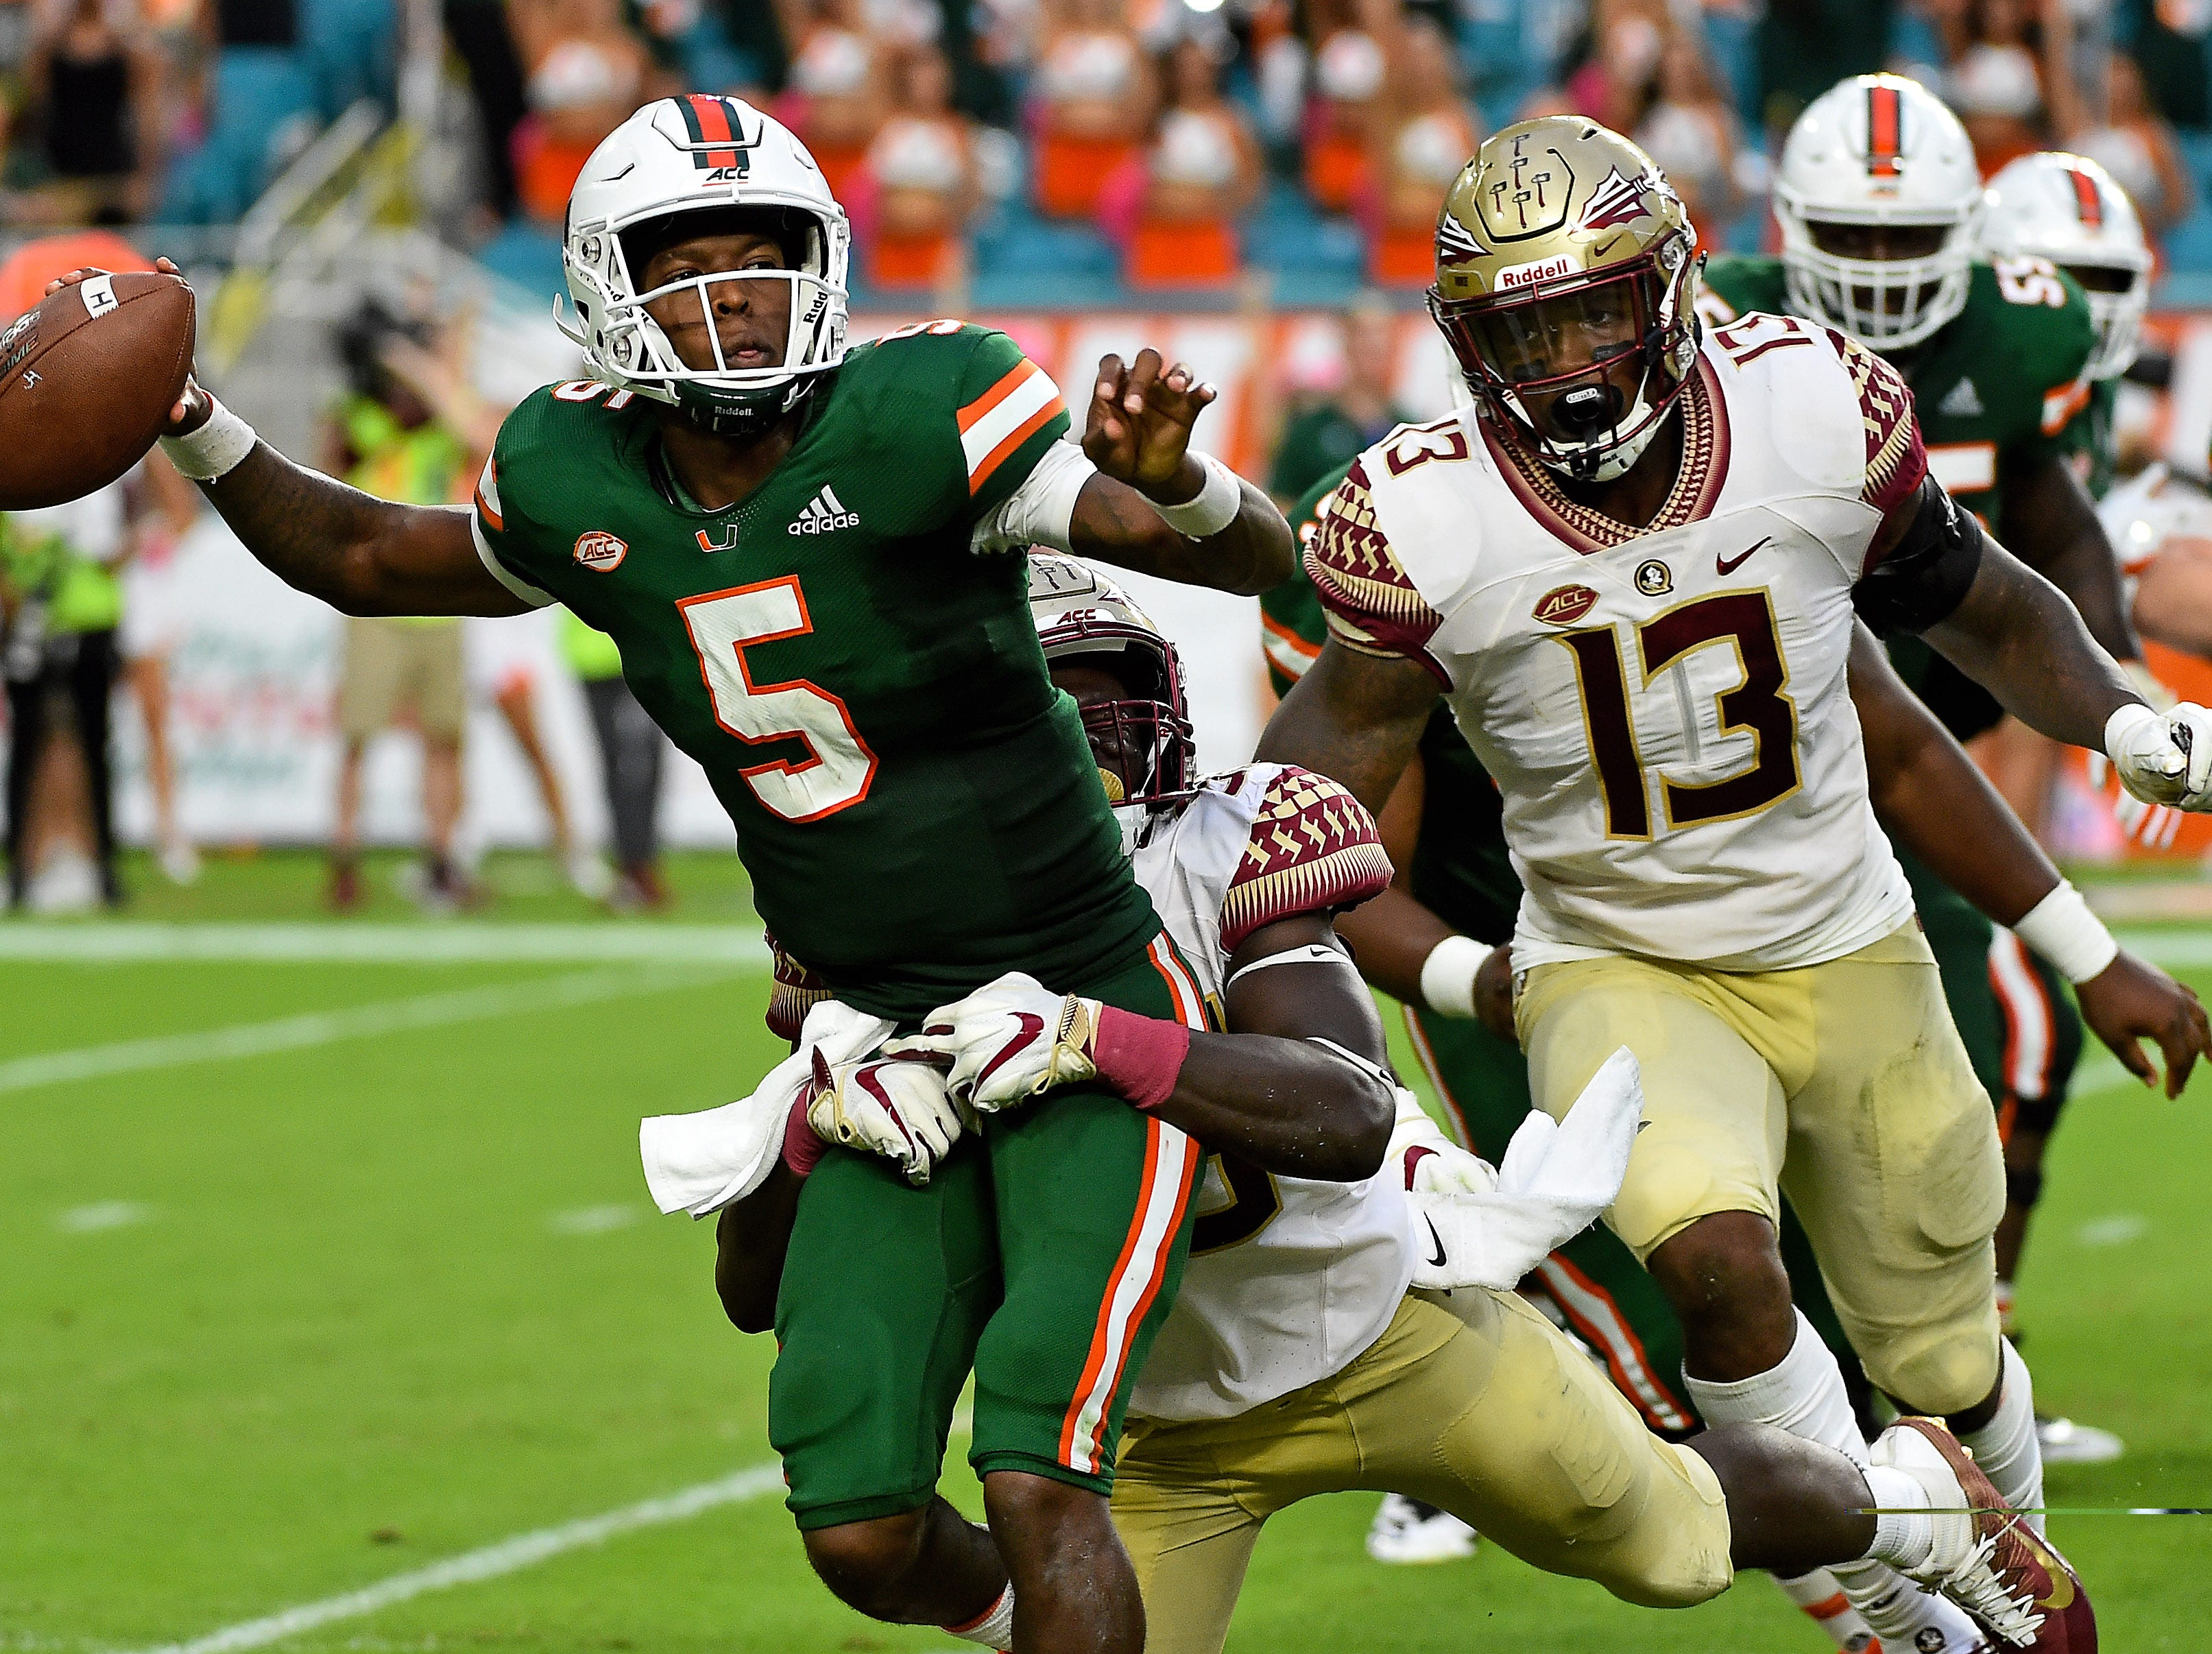 Oct 6, 2018; Miami Gardens, FL, USA; Florida State Seminoles linebacker Leonard Warner III (35) wraps up Miami Hurricanes quarterback N'Kosi Perry (5) during the second half at Hard Rock Stadium. Mandatory Credit: Jasen Vinlove-USA TODAY Sports